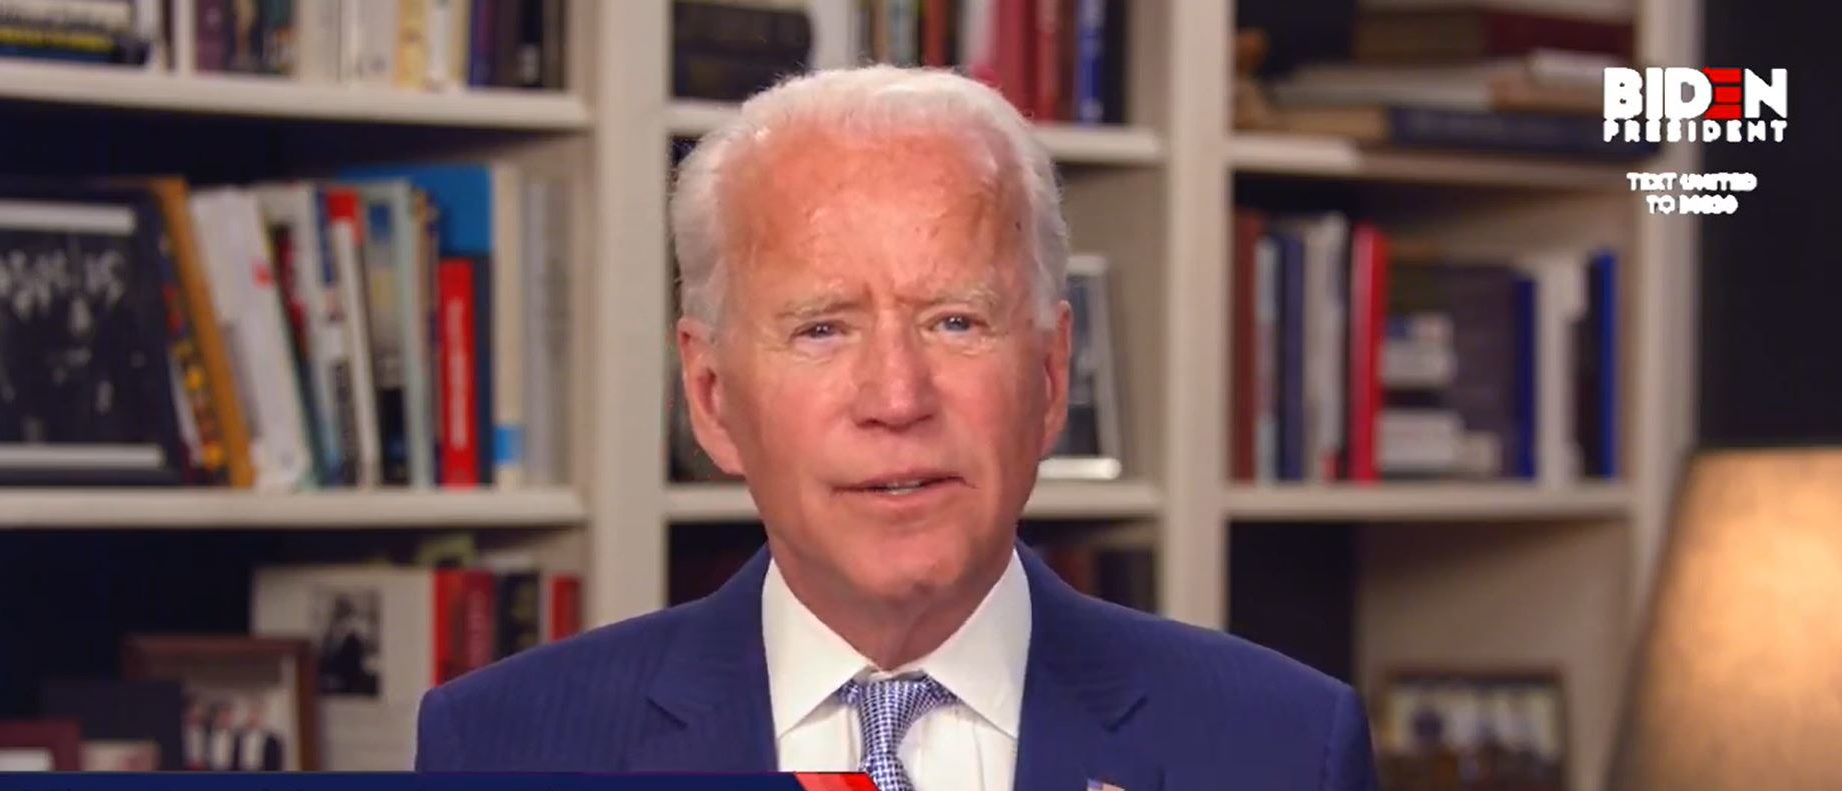 In this screengrab from Joebiden.com , Democratic presidential candidate and former U.S. Vice President Joe Biden speaks during a Coronavirus Virtual Town Hall from his home on April 08, 2020 in Wilmington, Delaware. (JoeBiden.com via Getty Images)